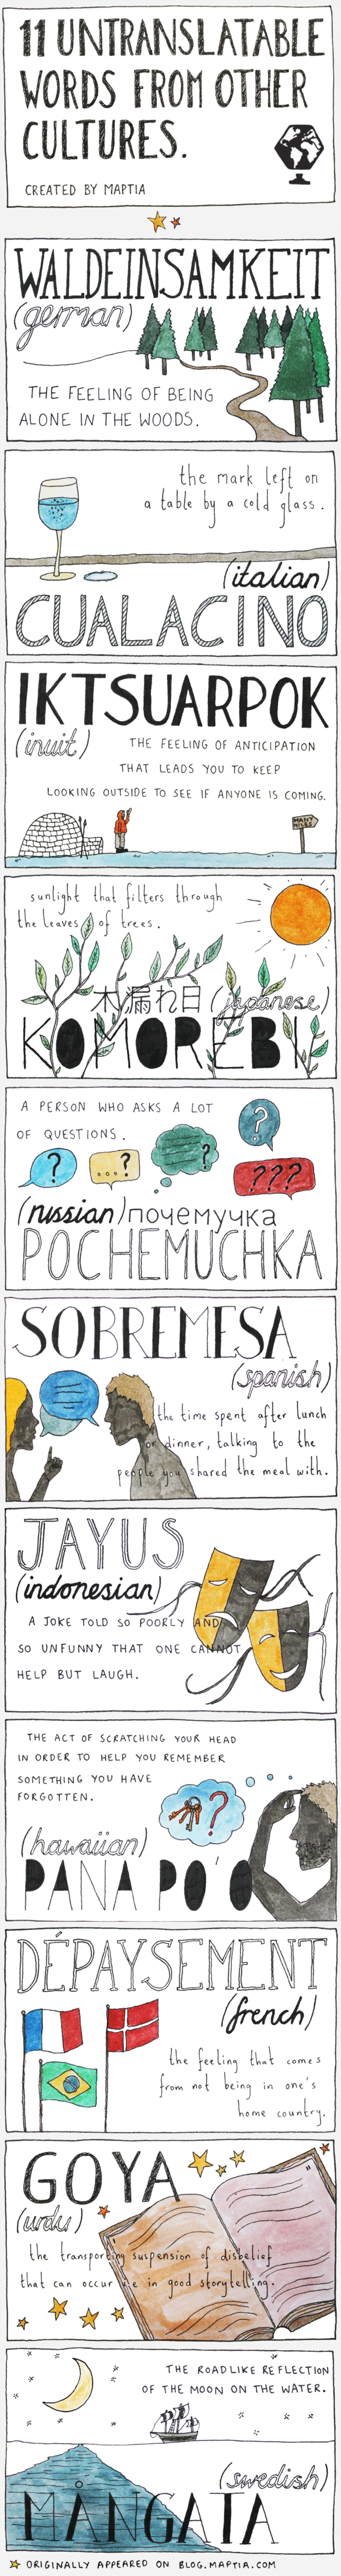 """11 Untranslatable Words From Other Cultures                                                                                                                <div class=""""pinSocialMeta"""">                                         <a class=""""socialItem"""" href=""""/pin/236298311672519924/repins/"""">             <em class=""""repinIconSmall""""></em>             <em class=""""socialMetaCount repinCountSmall"""">                 2             </em>         </a>                         <a class=""""socialItem likes""""…"""